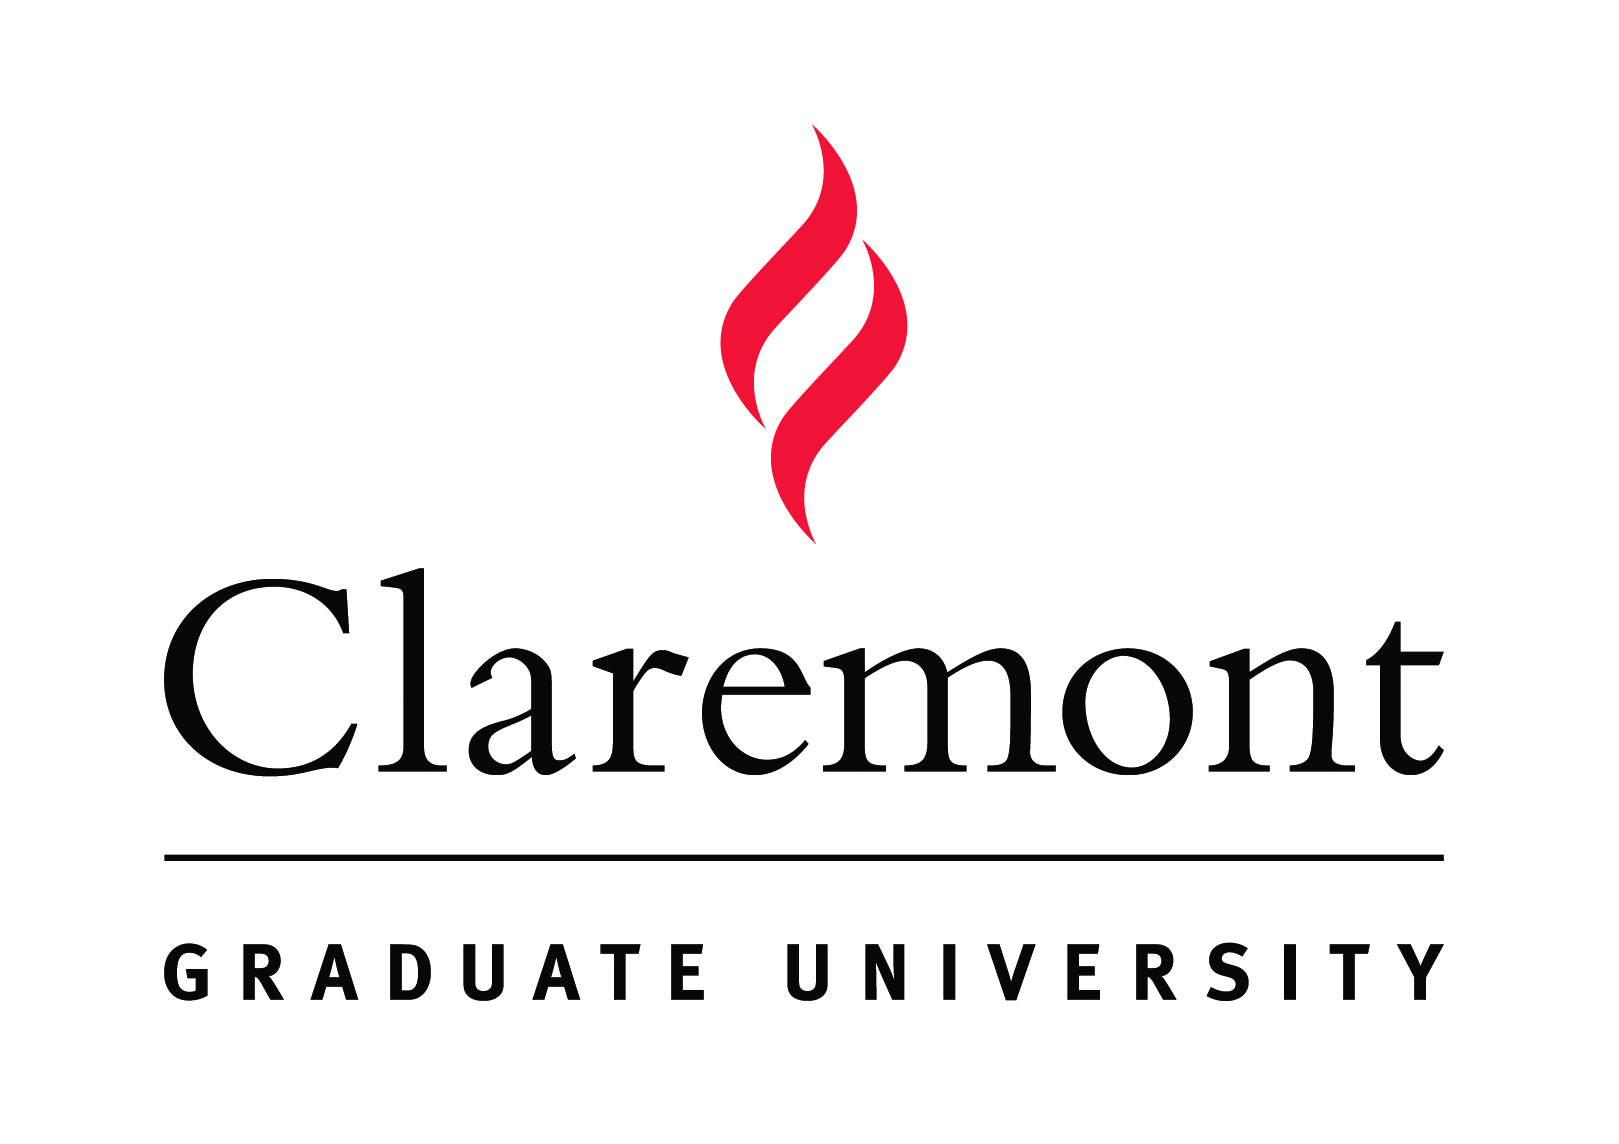 Drucker School of Management - Claremont Graduate University